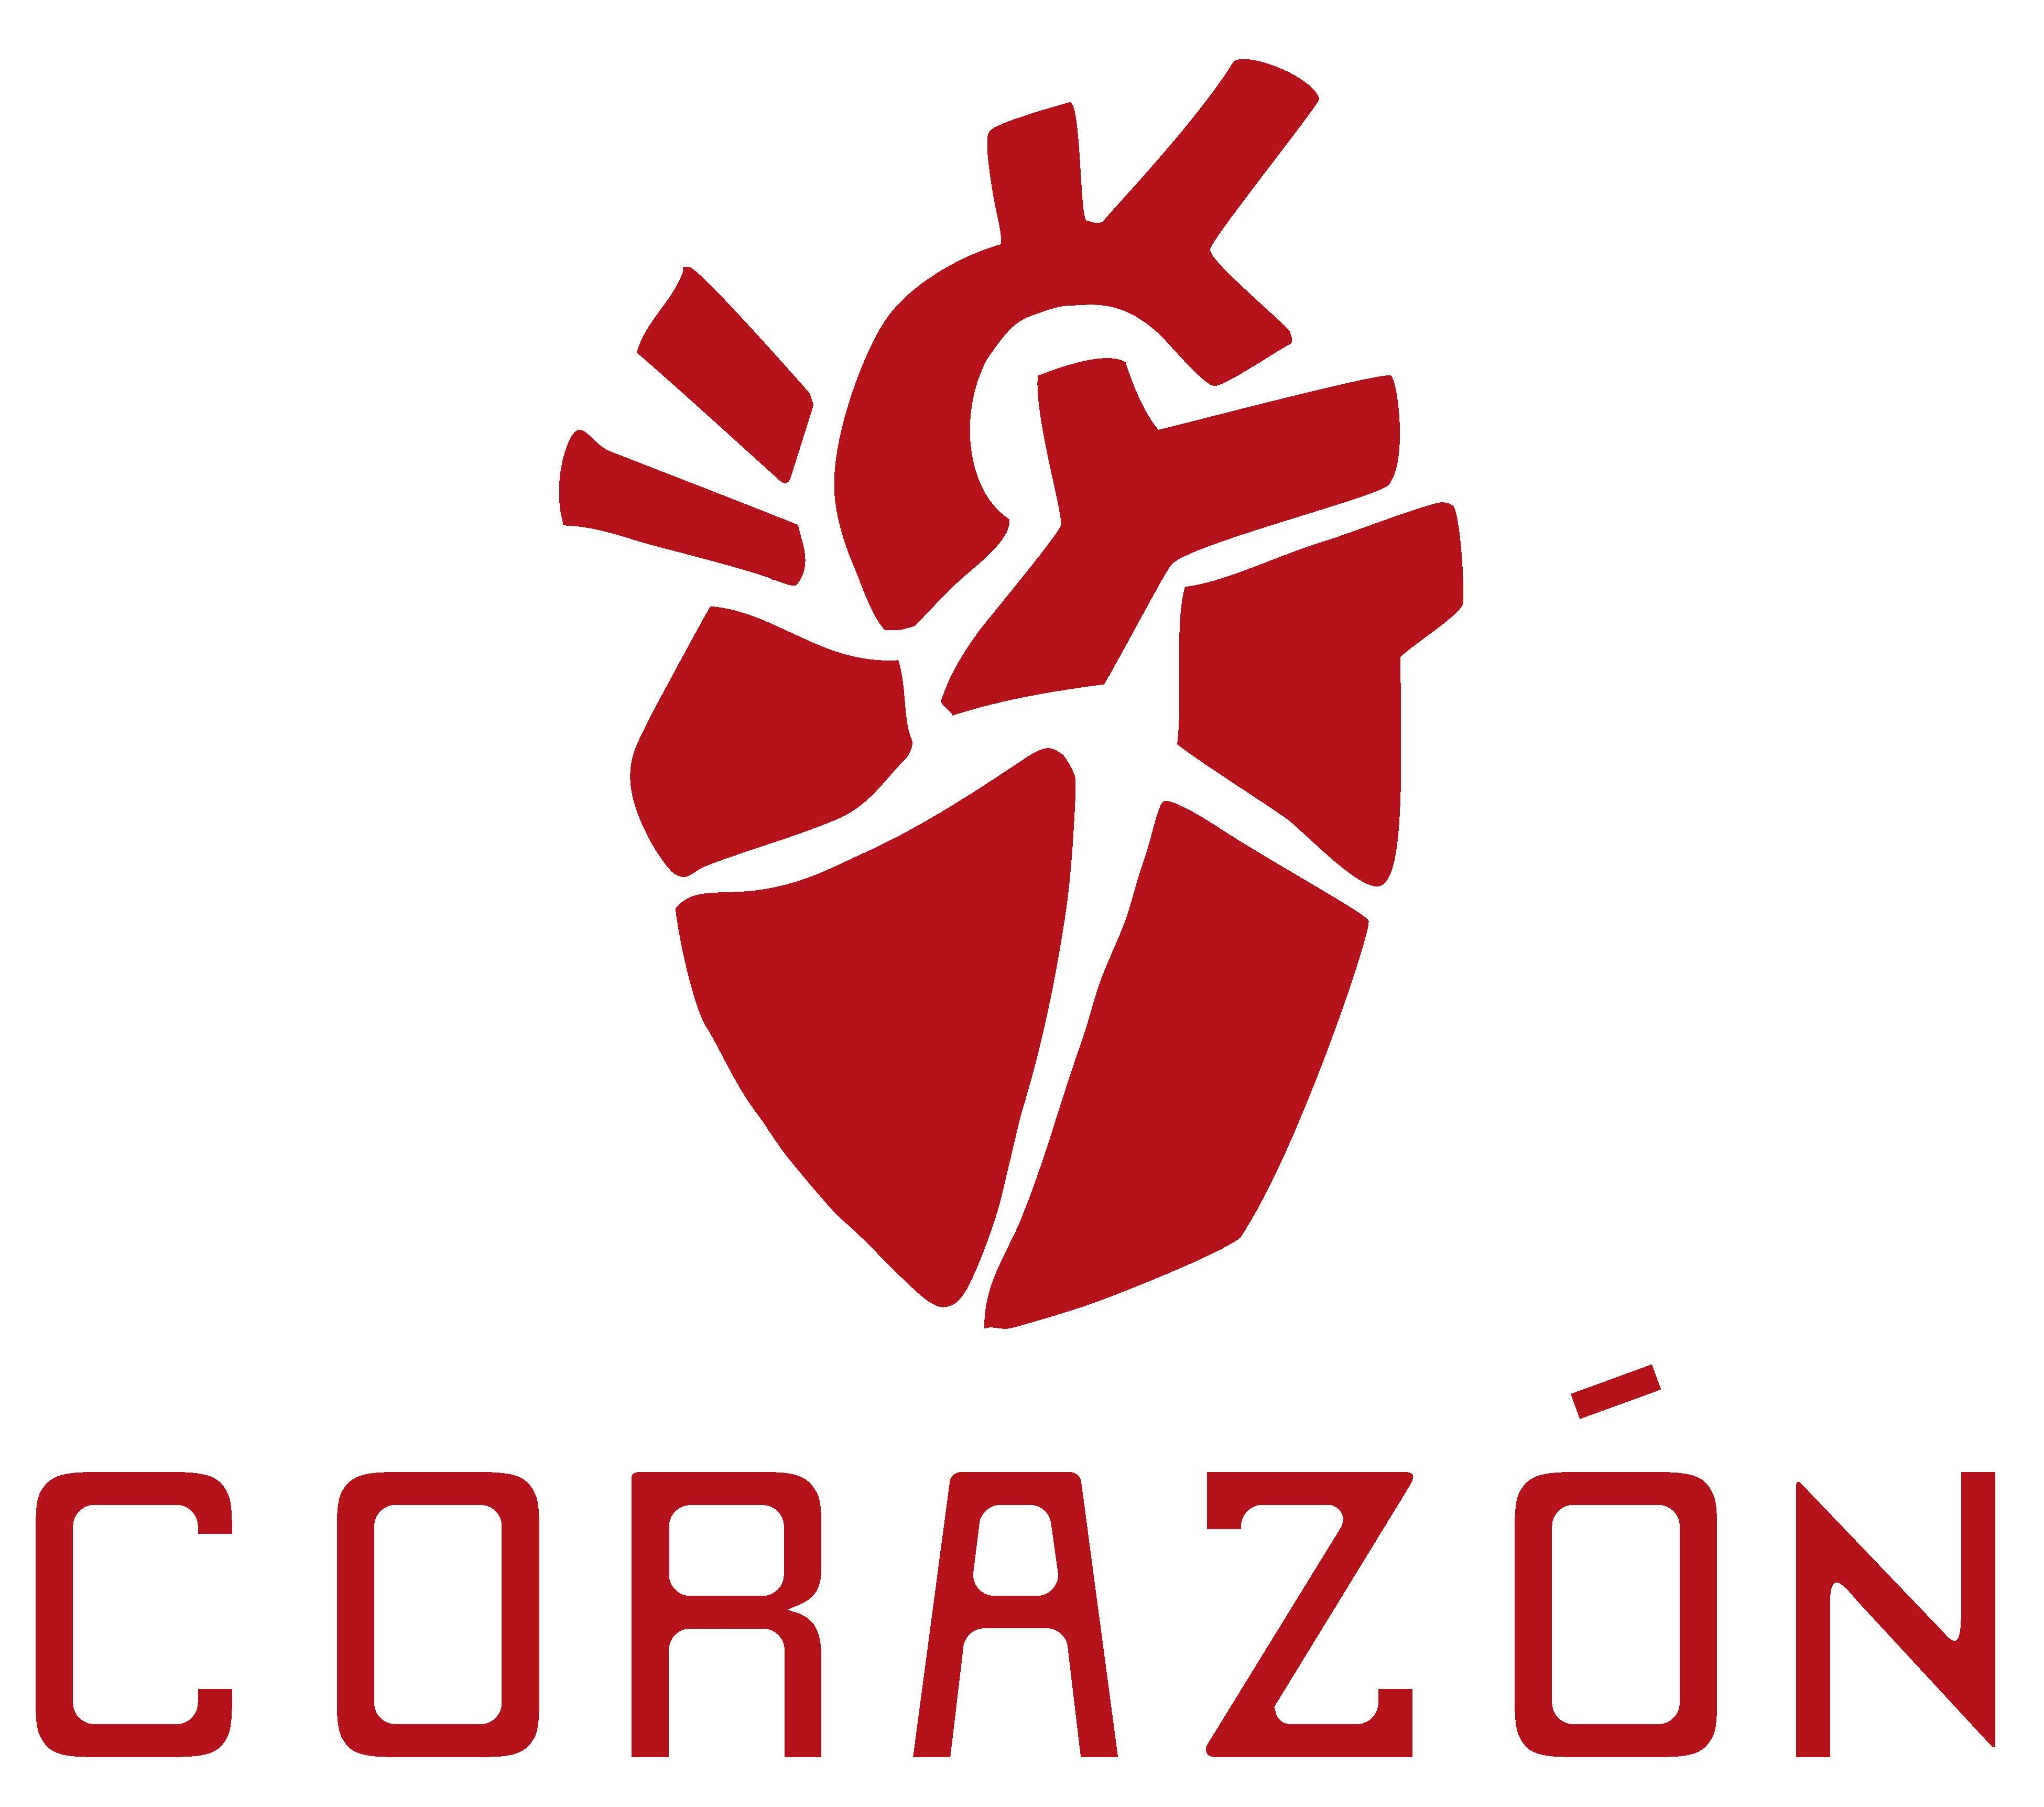 Corazon Heart Logo